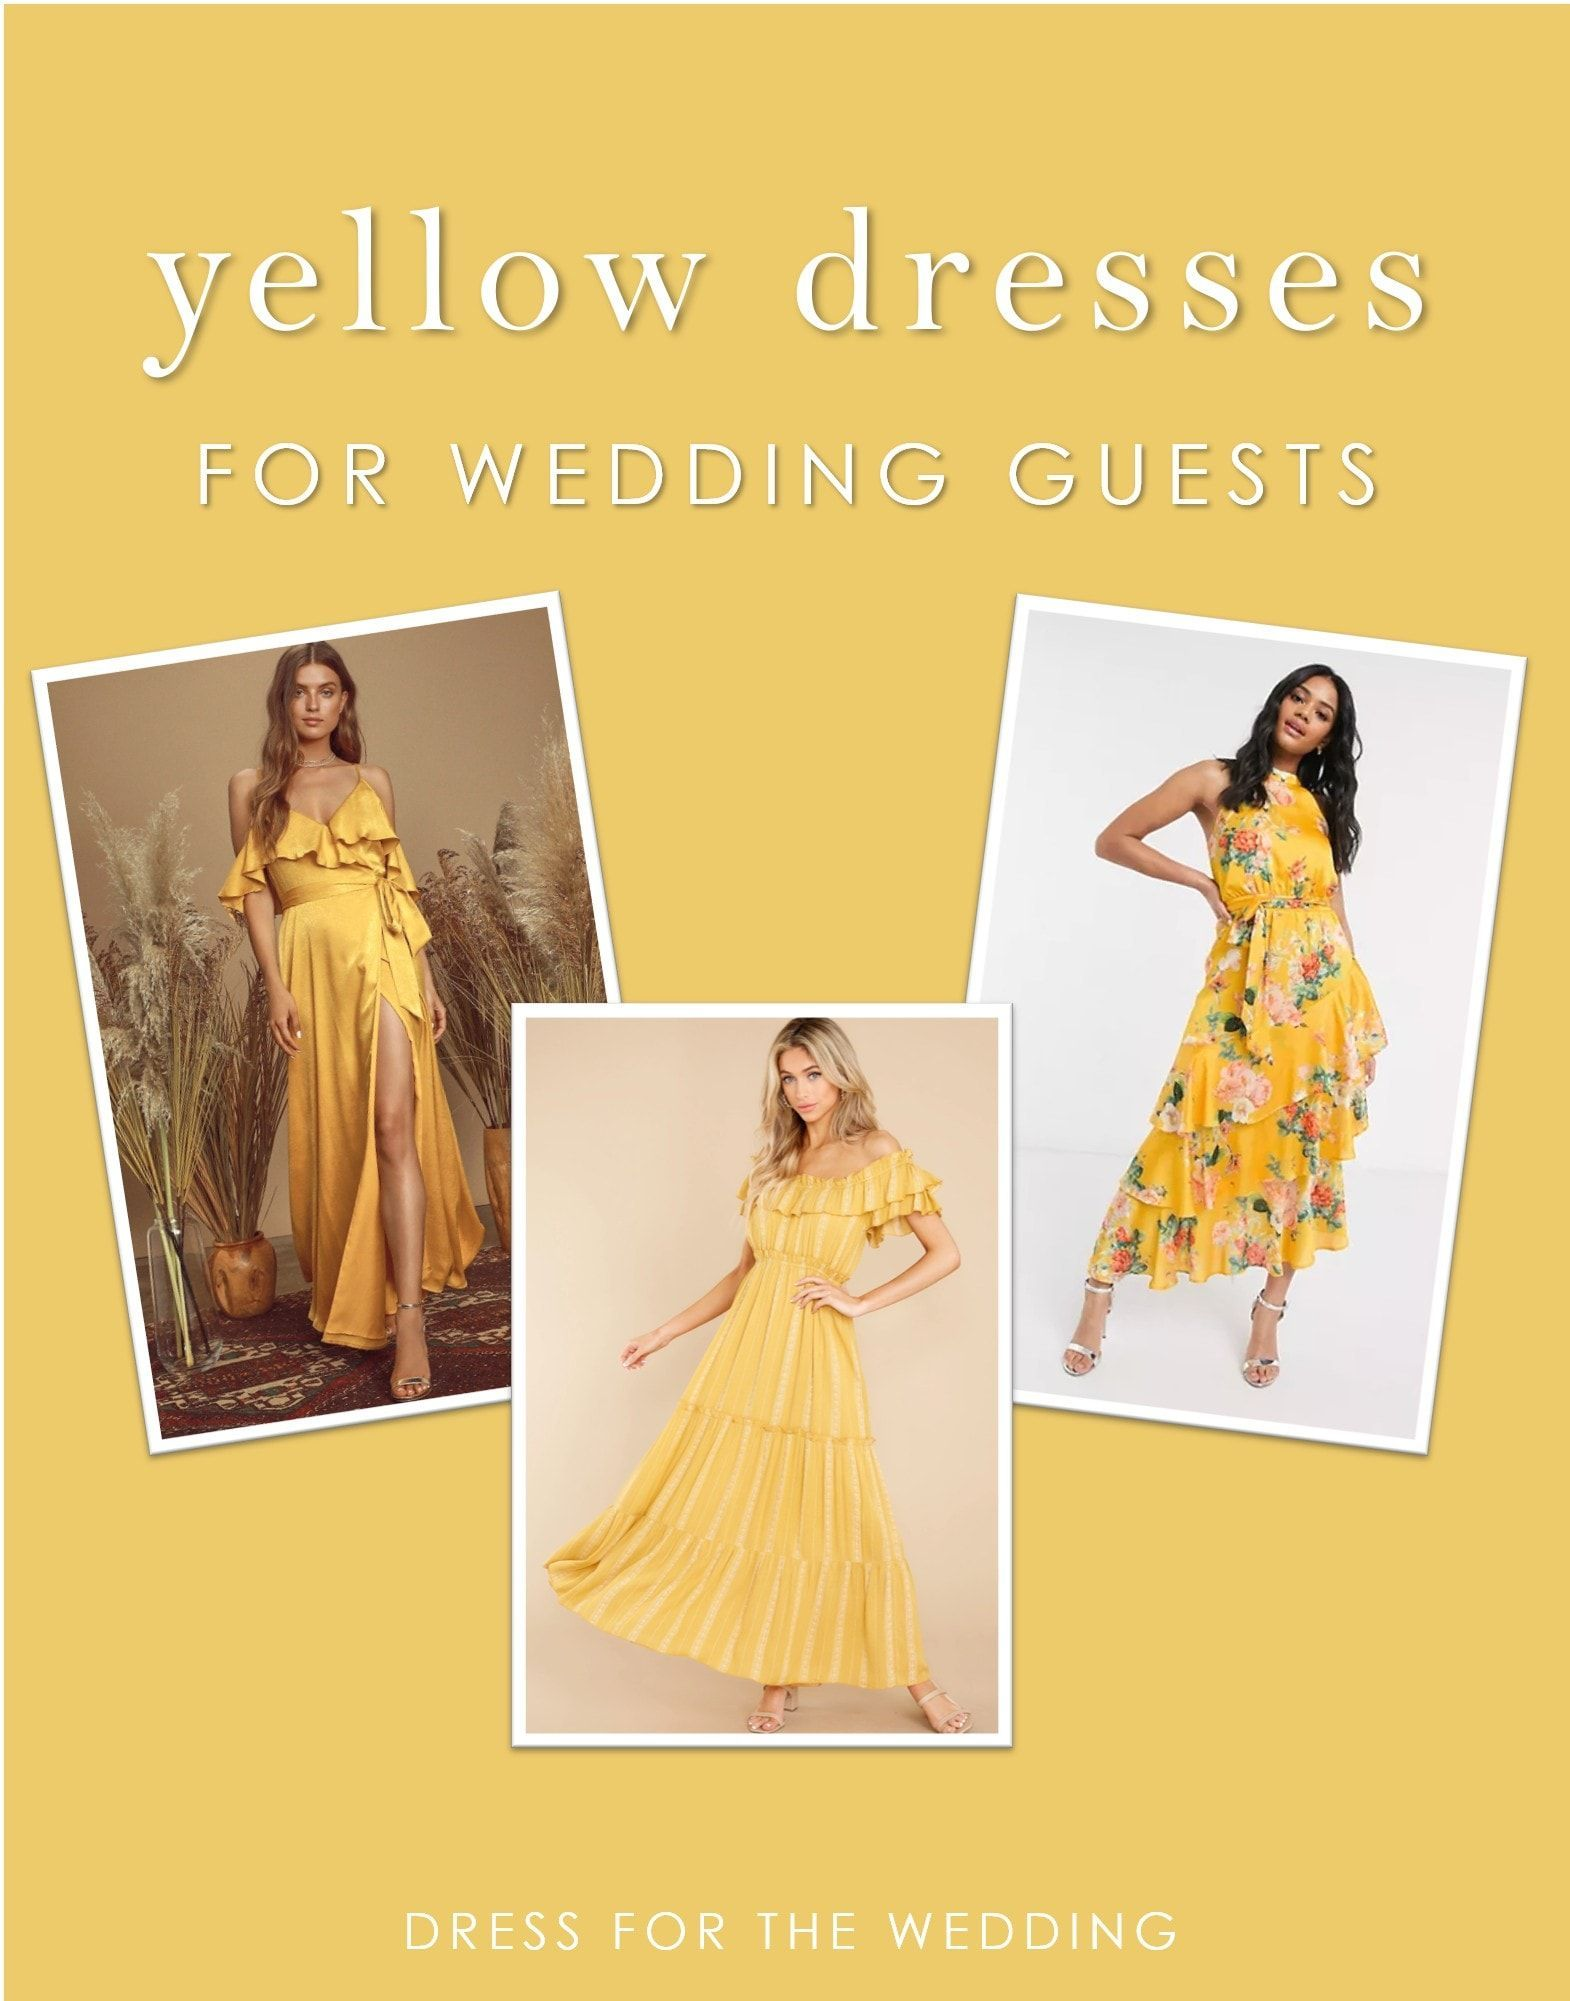 Yellow Dresses For Weddings Dress For The Wedding In 2021 Yellow Wedding Dress Yellow Dress Wedding Guest Dress [ 2001 x 1570 Pixel ]